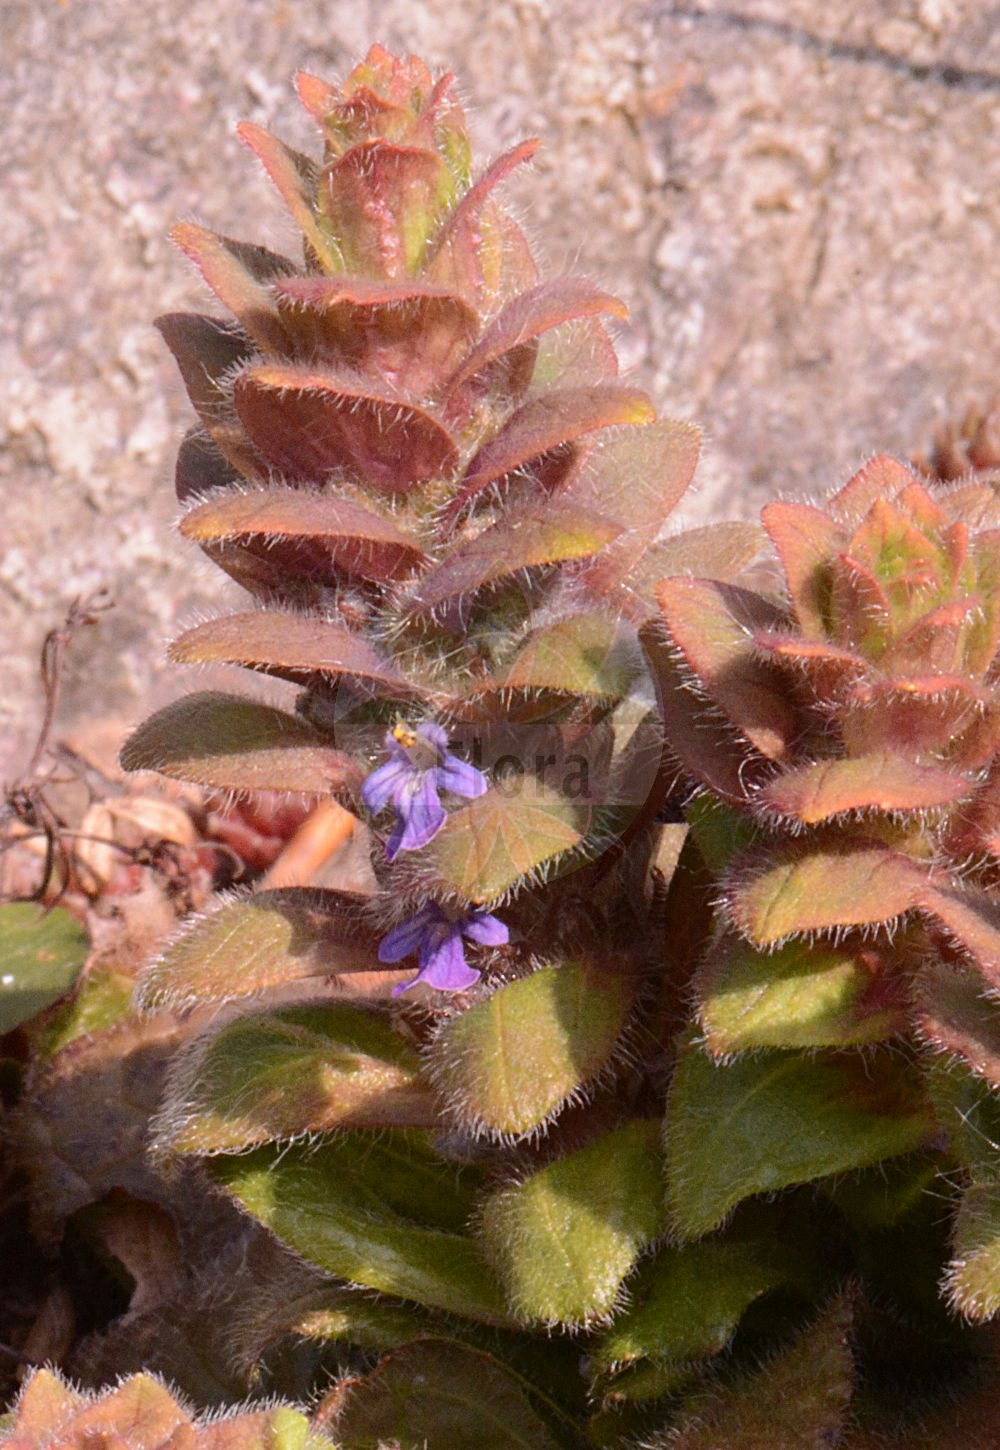 Foto von Ajuga pyramidalis (Pyramiden-Guensel - Pyramidal Bugle). Das Foto wurde in Frankfurt, Hessen, Deutschland aufgenommen. ---- Photo of Ajuga pyramidalis (Pyramiden-Guensel - Pyramidal Bugle).The picture was taken in Frankfurt, Hesse, Germany.(Ajuga pyramidalis,Pyramiden-Guensel,Pyramidal Bugle,Bugula pyramidalis,Bulga pyramidalis,Teucrium pyramidale,Limestone Bugle,Ajuga,Guensel,Bugle,Lamiaceae,Lippenbluetengewaechse;Lippenbluetler,Nettle family)